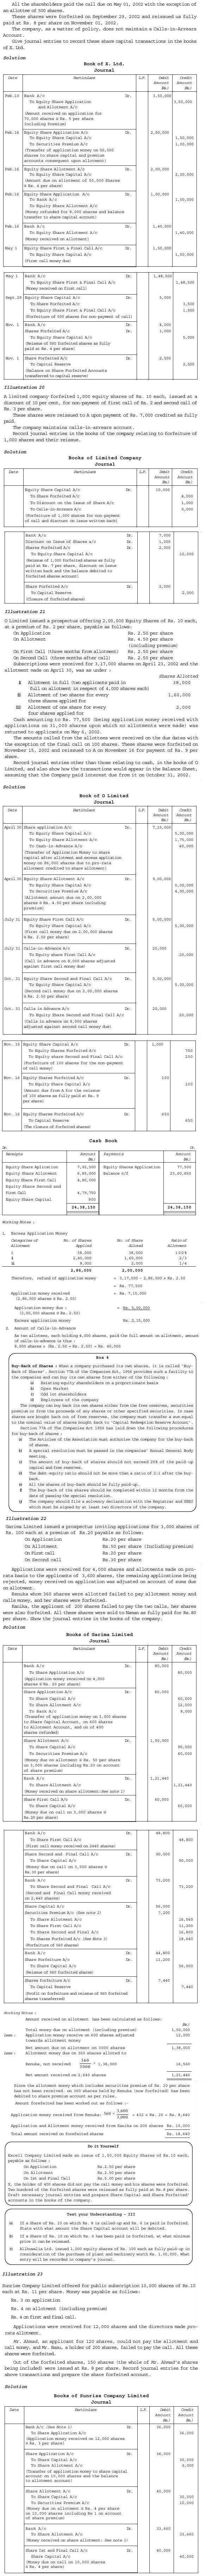 NCERT Class XII Accountancy II Chapter 1 - Accounting for Share Capital